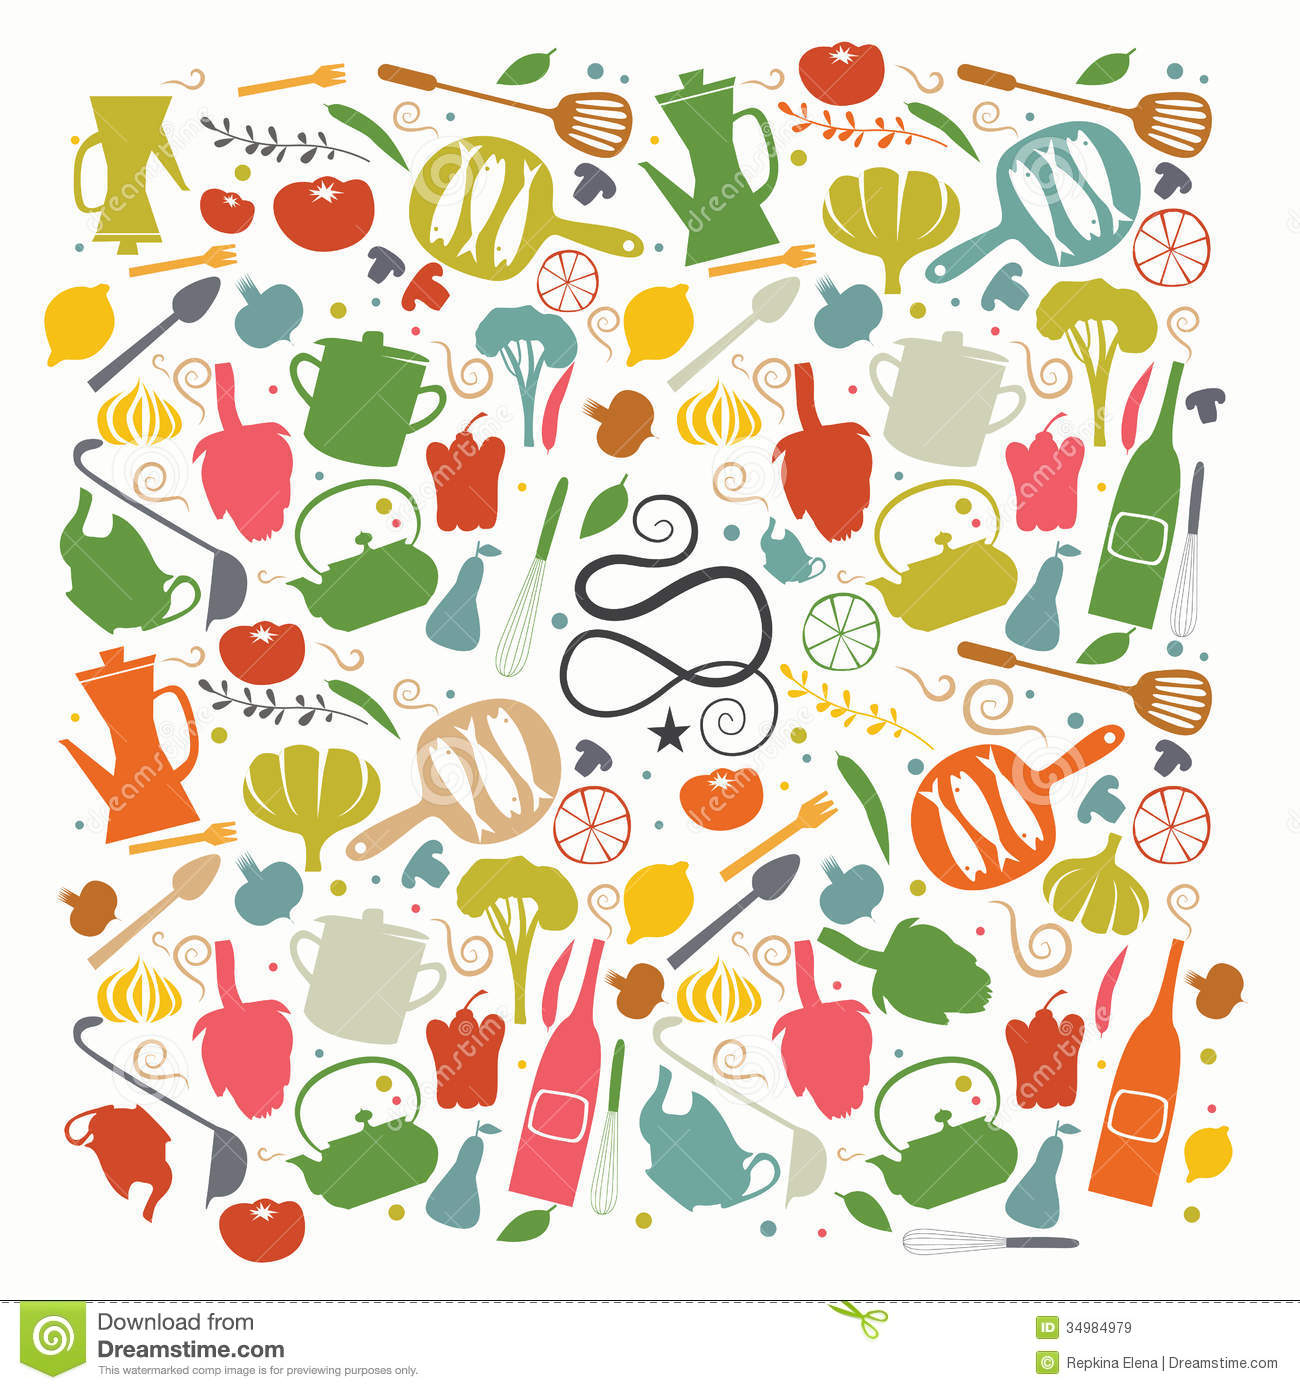 Cookbook Covers Printable Free : Cookbook covers clipart suggest